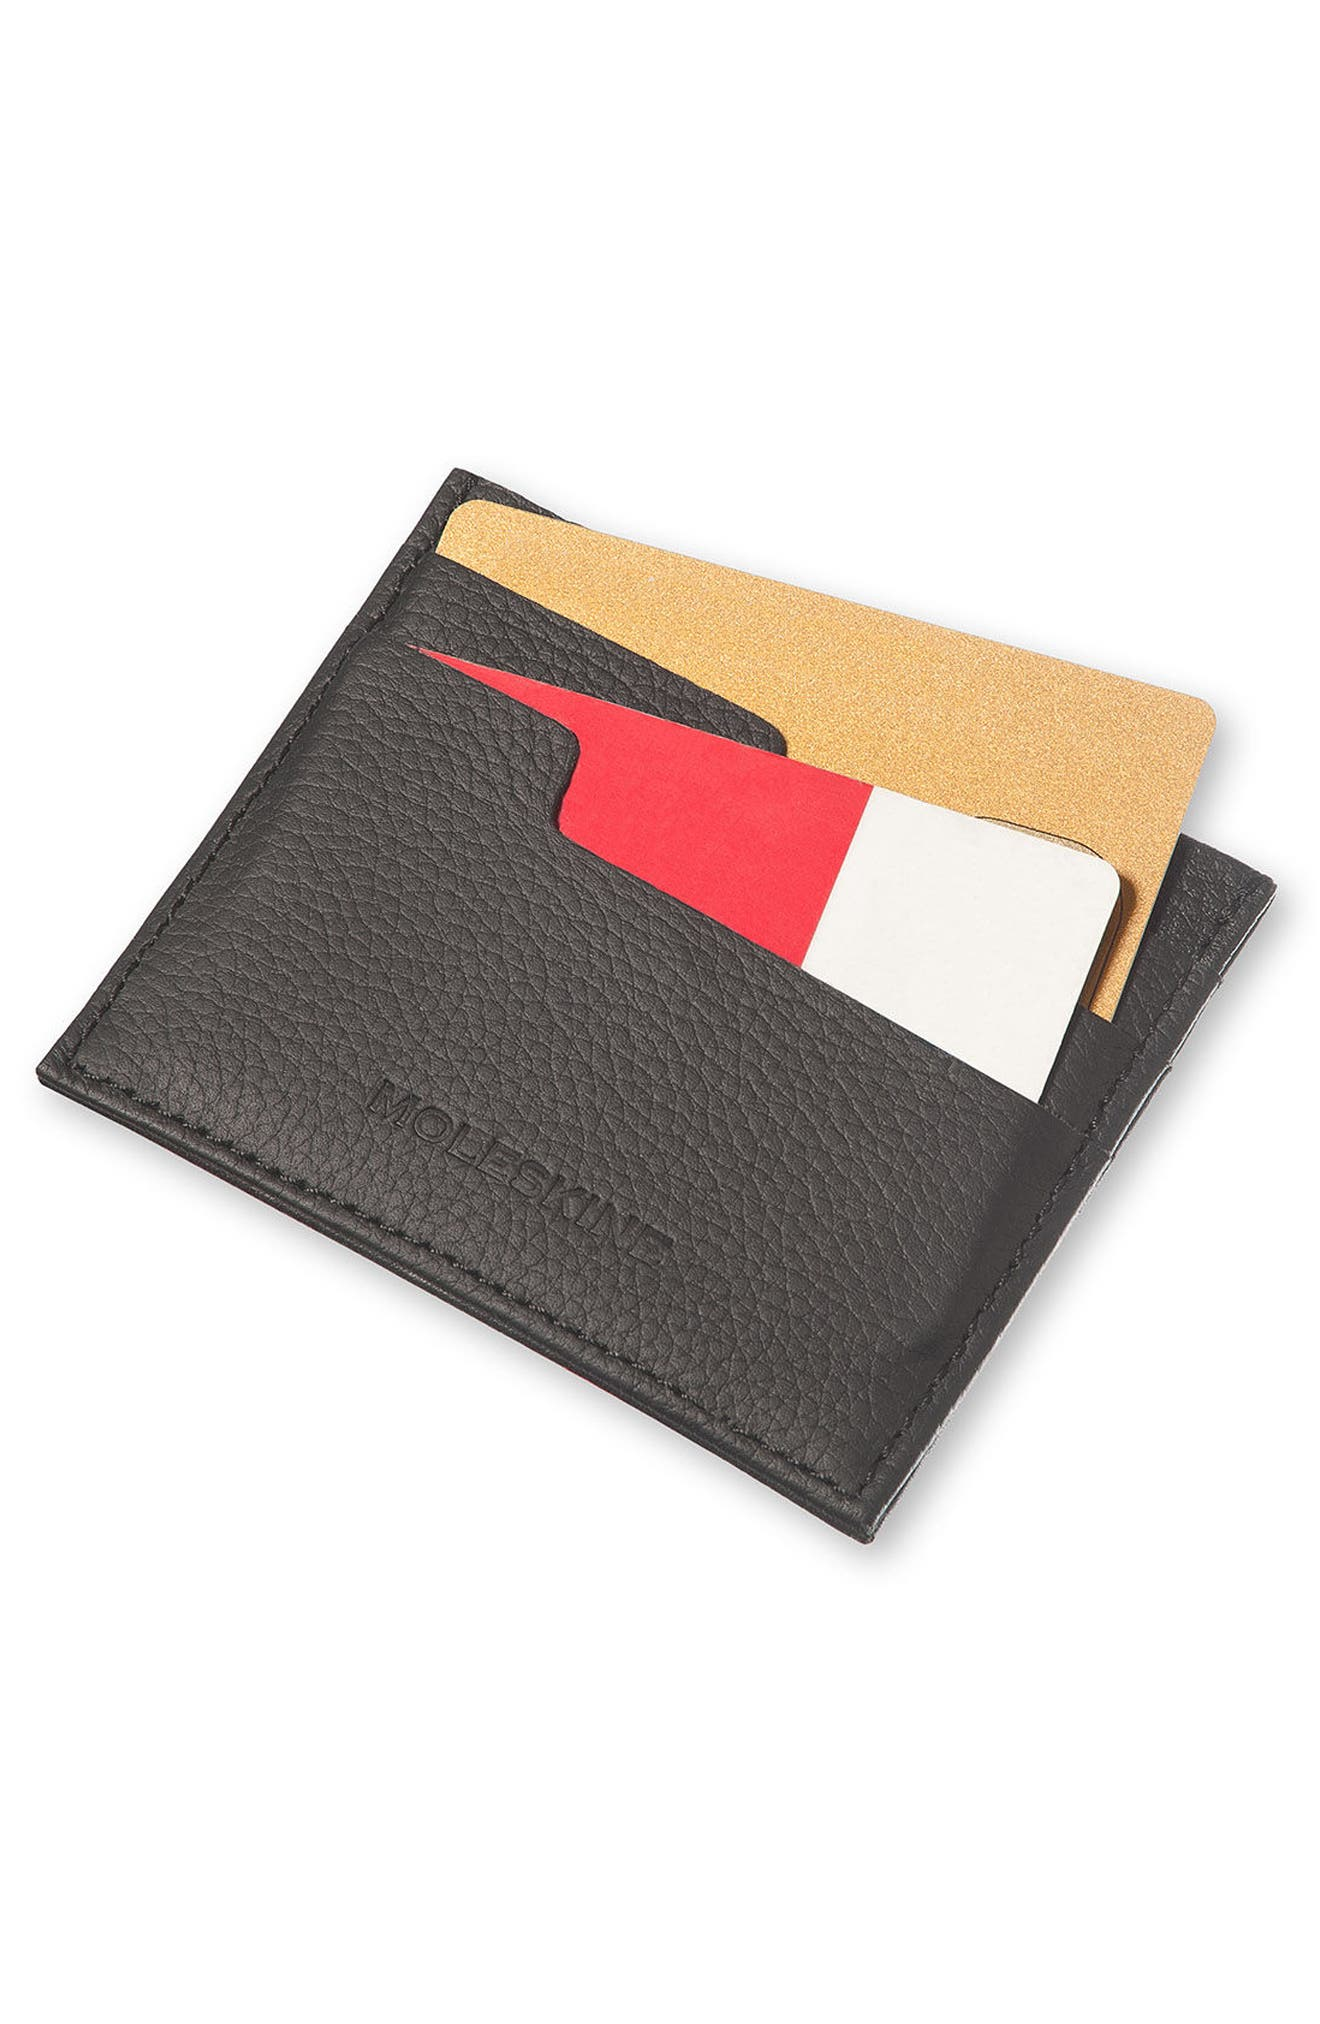 Moleskin Lineage Leather Card Case,                             Alternate thumbnail 4, color,                             001